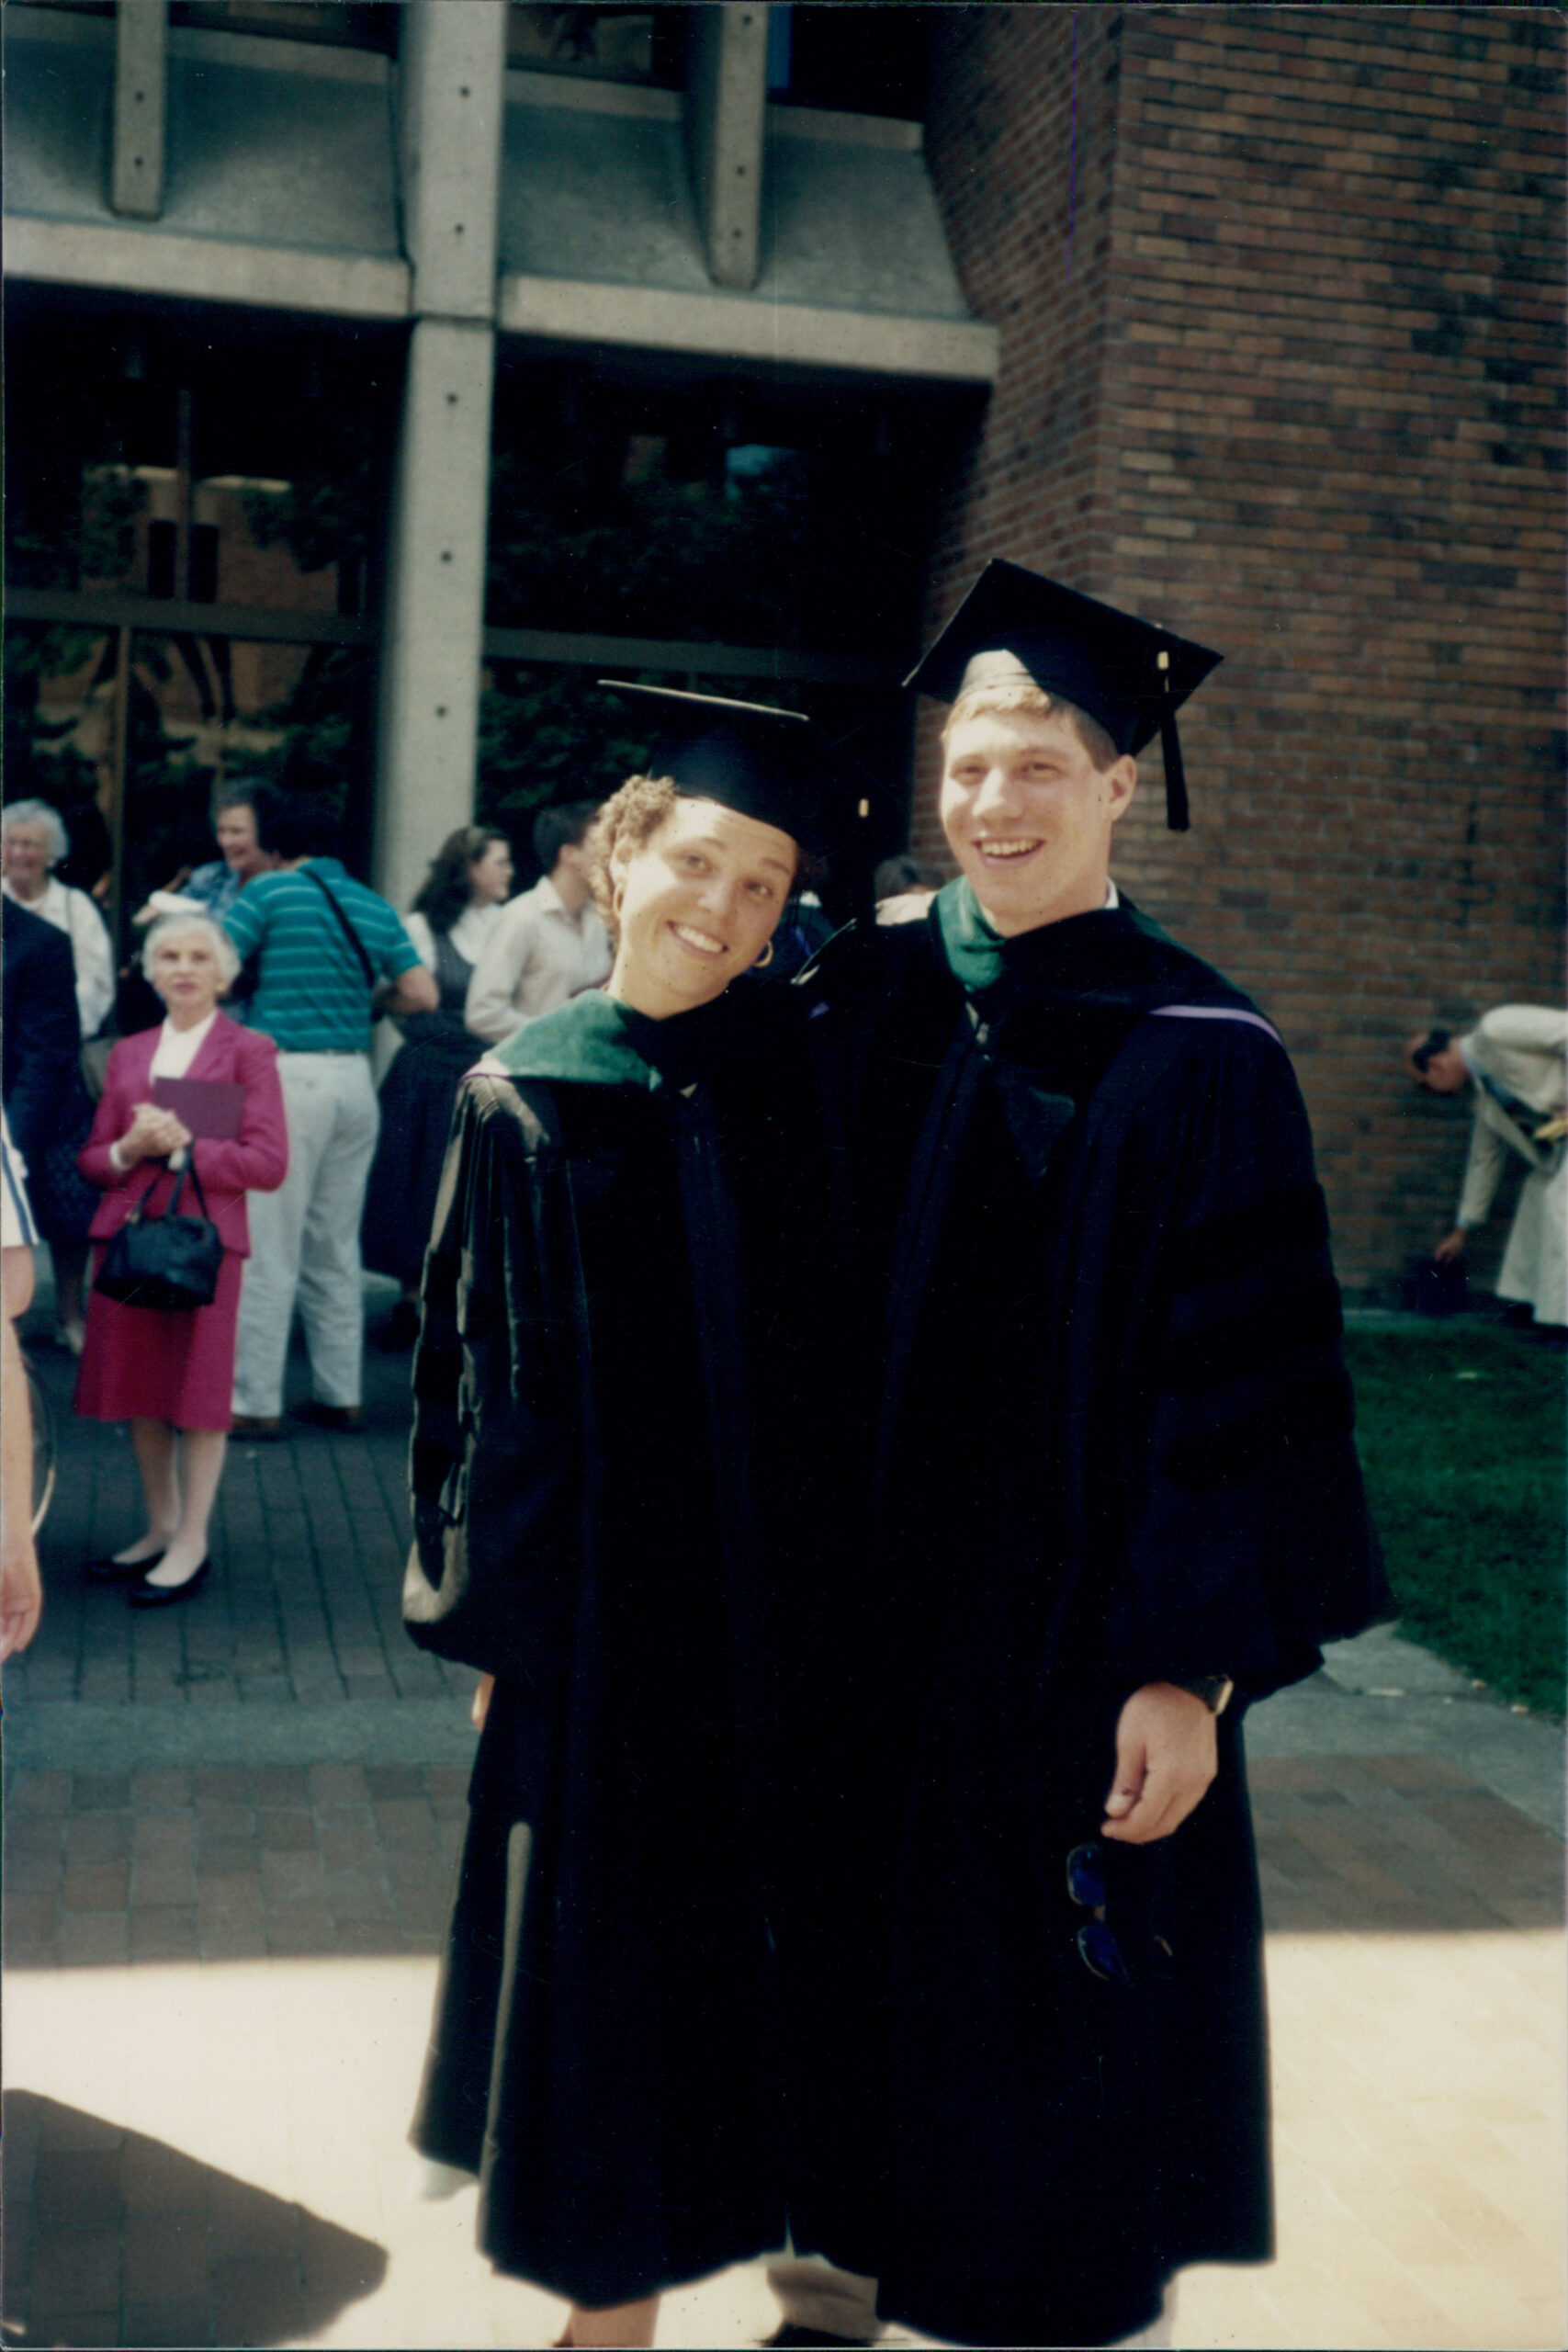 Photo of Al and Monica in graduation robes and caps.